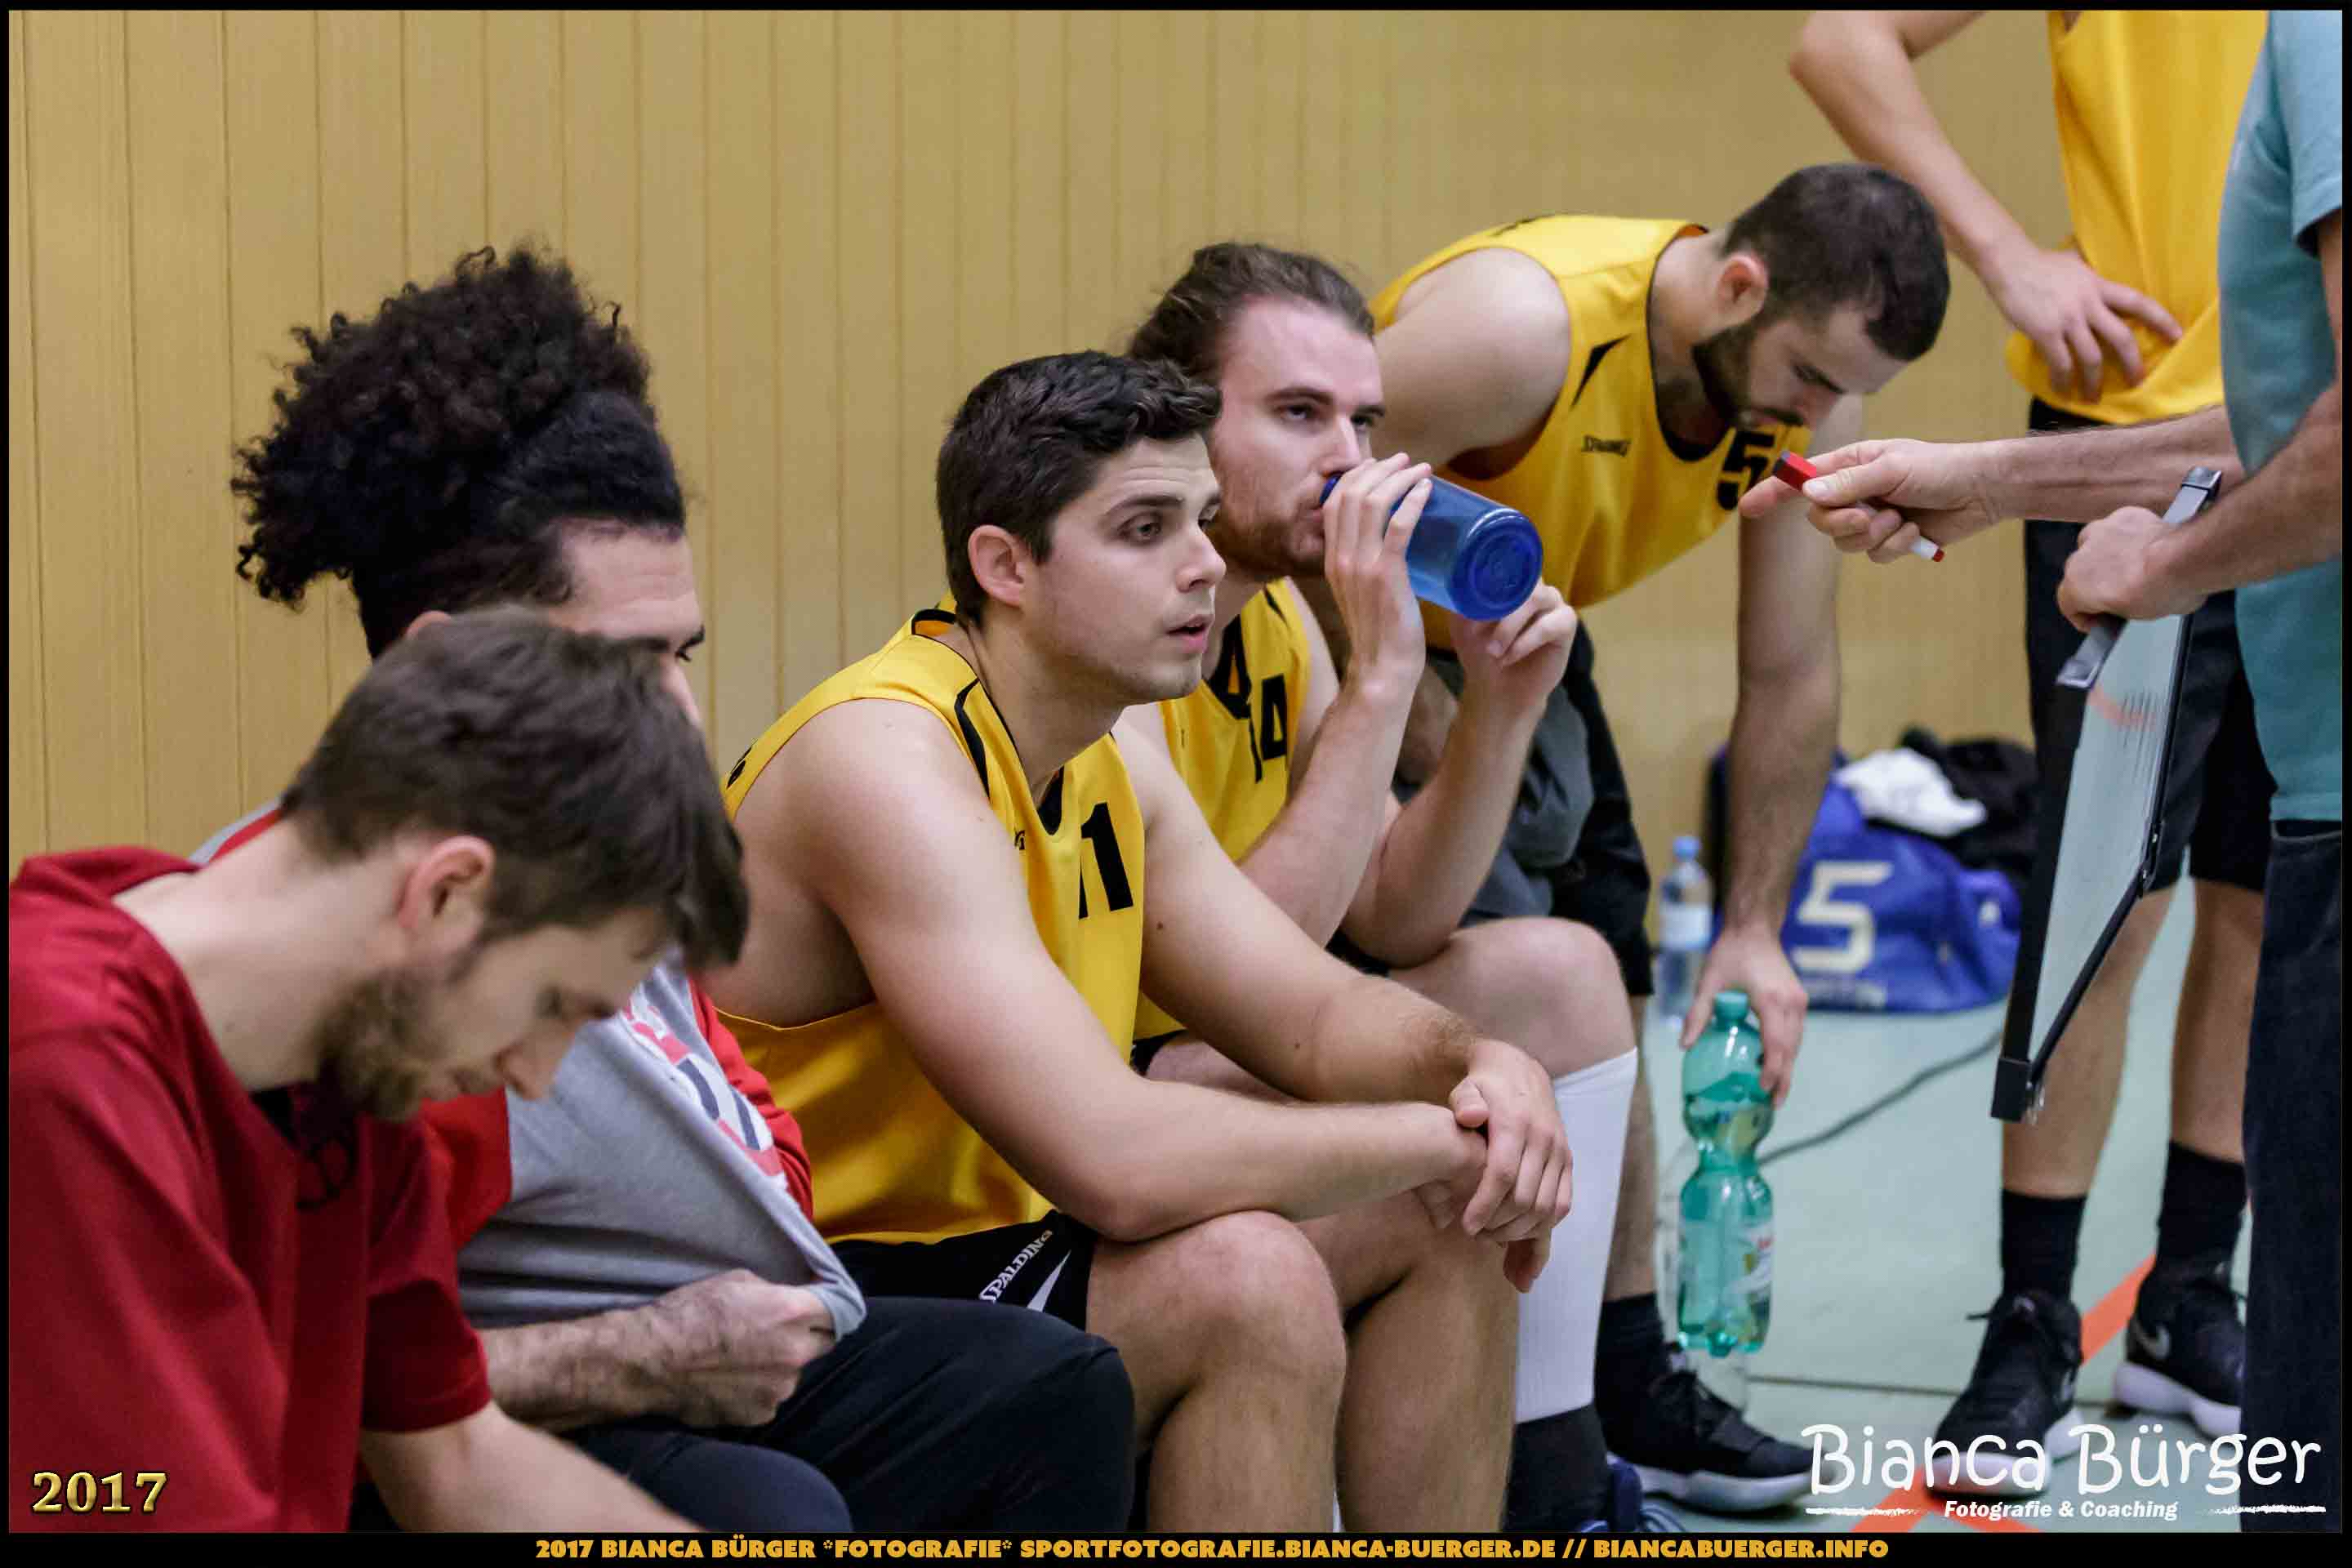 HeOL - 1. Herren Weddinger Wiesel vs Freibeuter 2010 1 (Basketball)